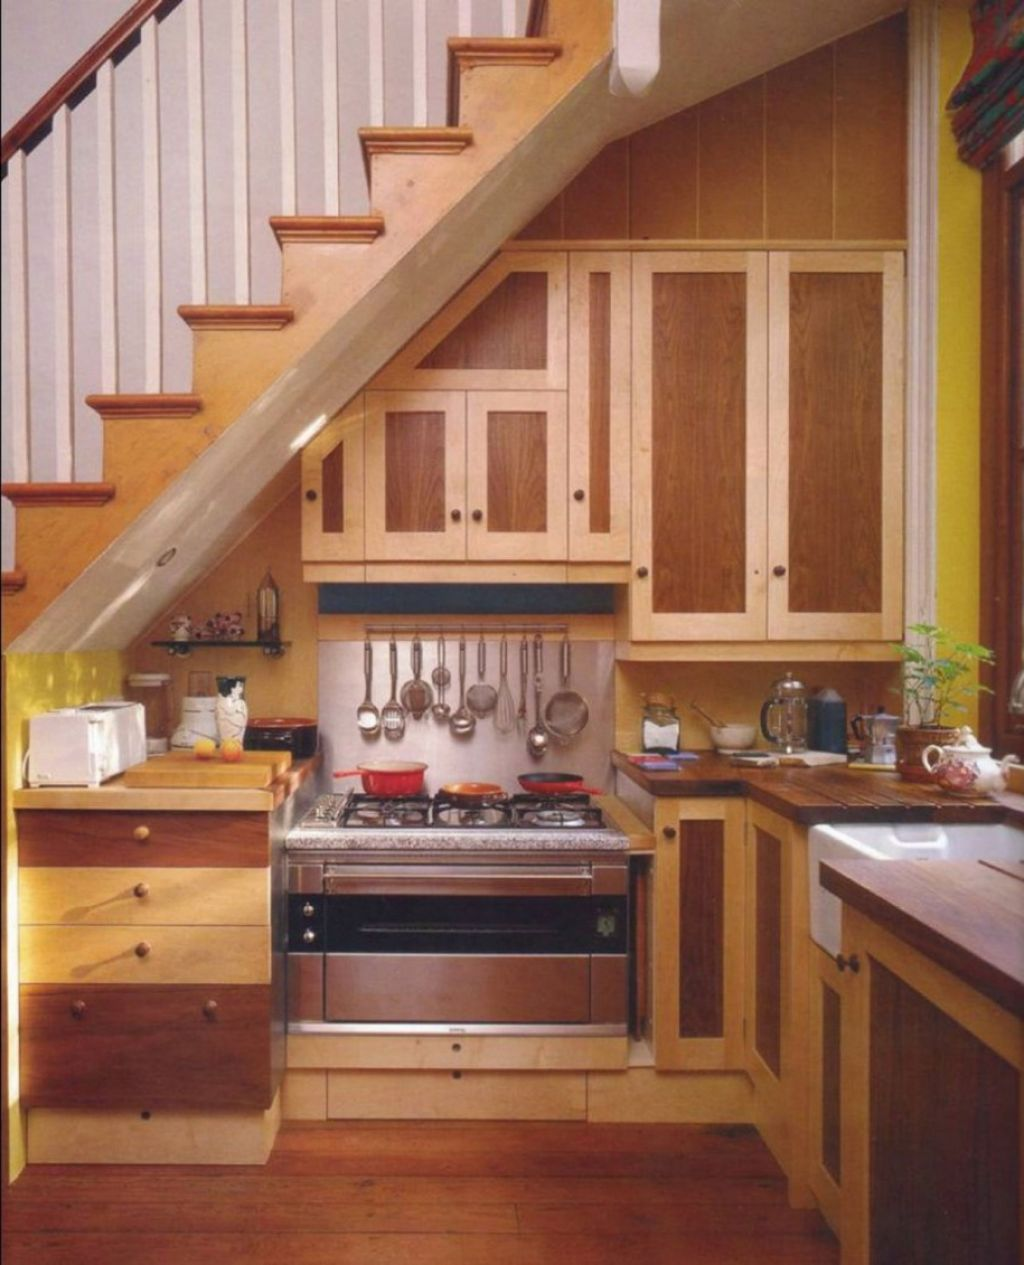 25 Clever Under Stairs Ideas To Optimize The Leftover Space Kitchen Under Stairs Stairs In Kitchen Tiny House Kitchen